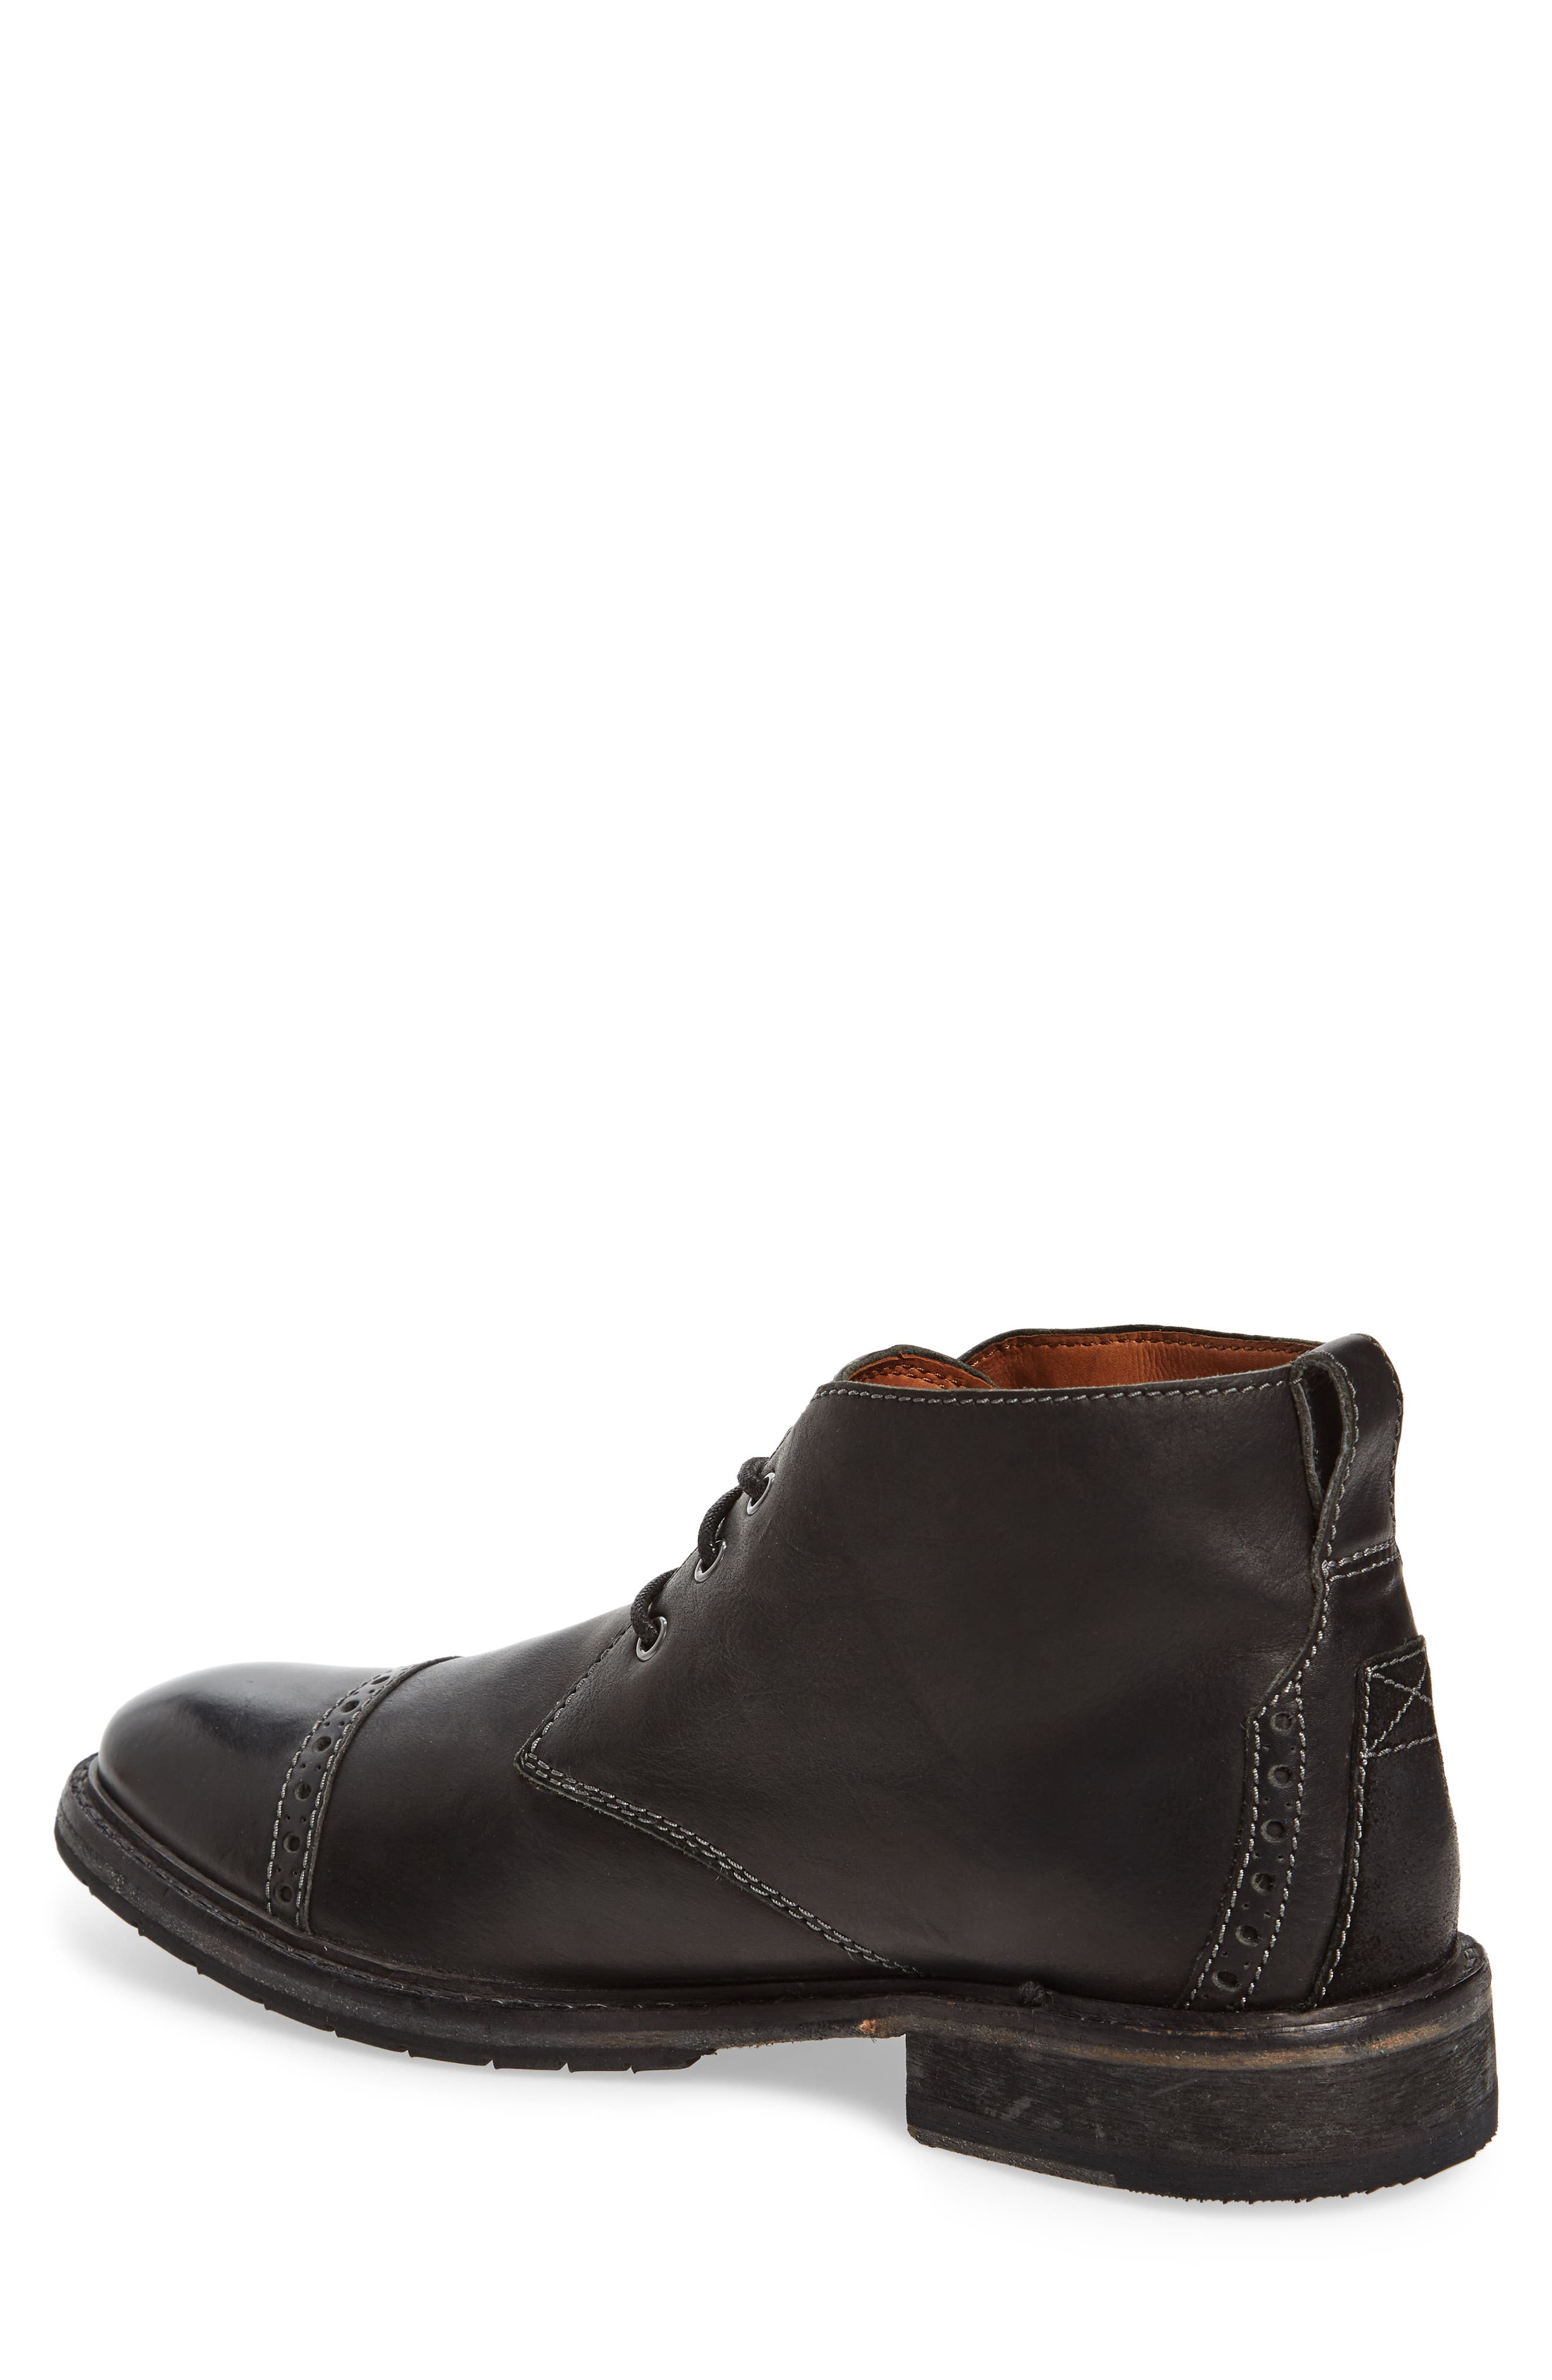 Clarkdale Water Resistant Chukka Boot,                             Alternate thumbnail 2, color,                             003